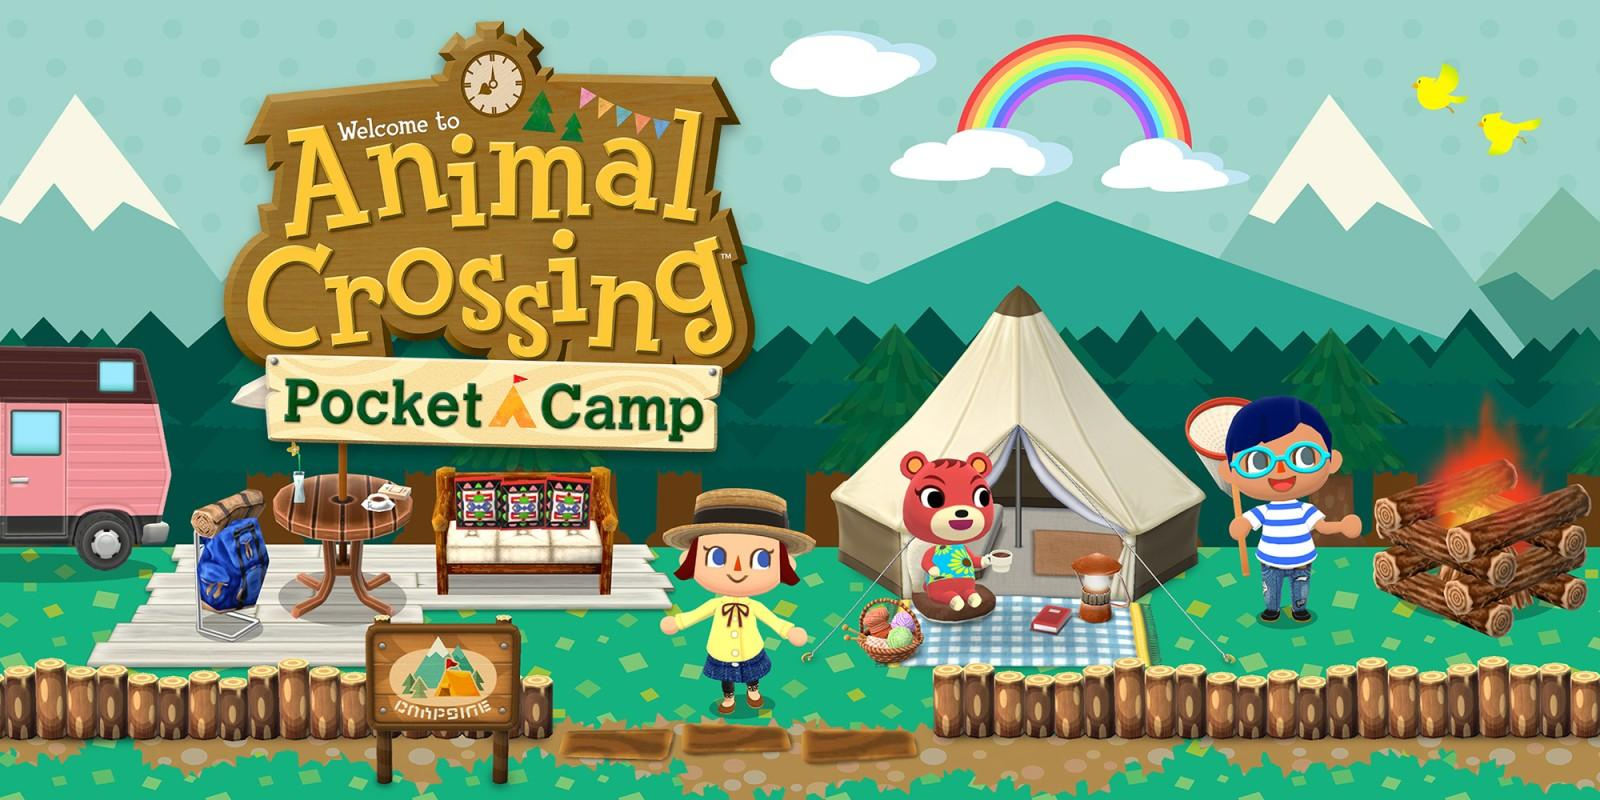 'Animal Crossing: Pocket Camp' Gets its First Event, Celebrating the Holidays